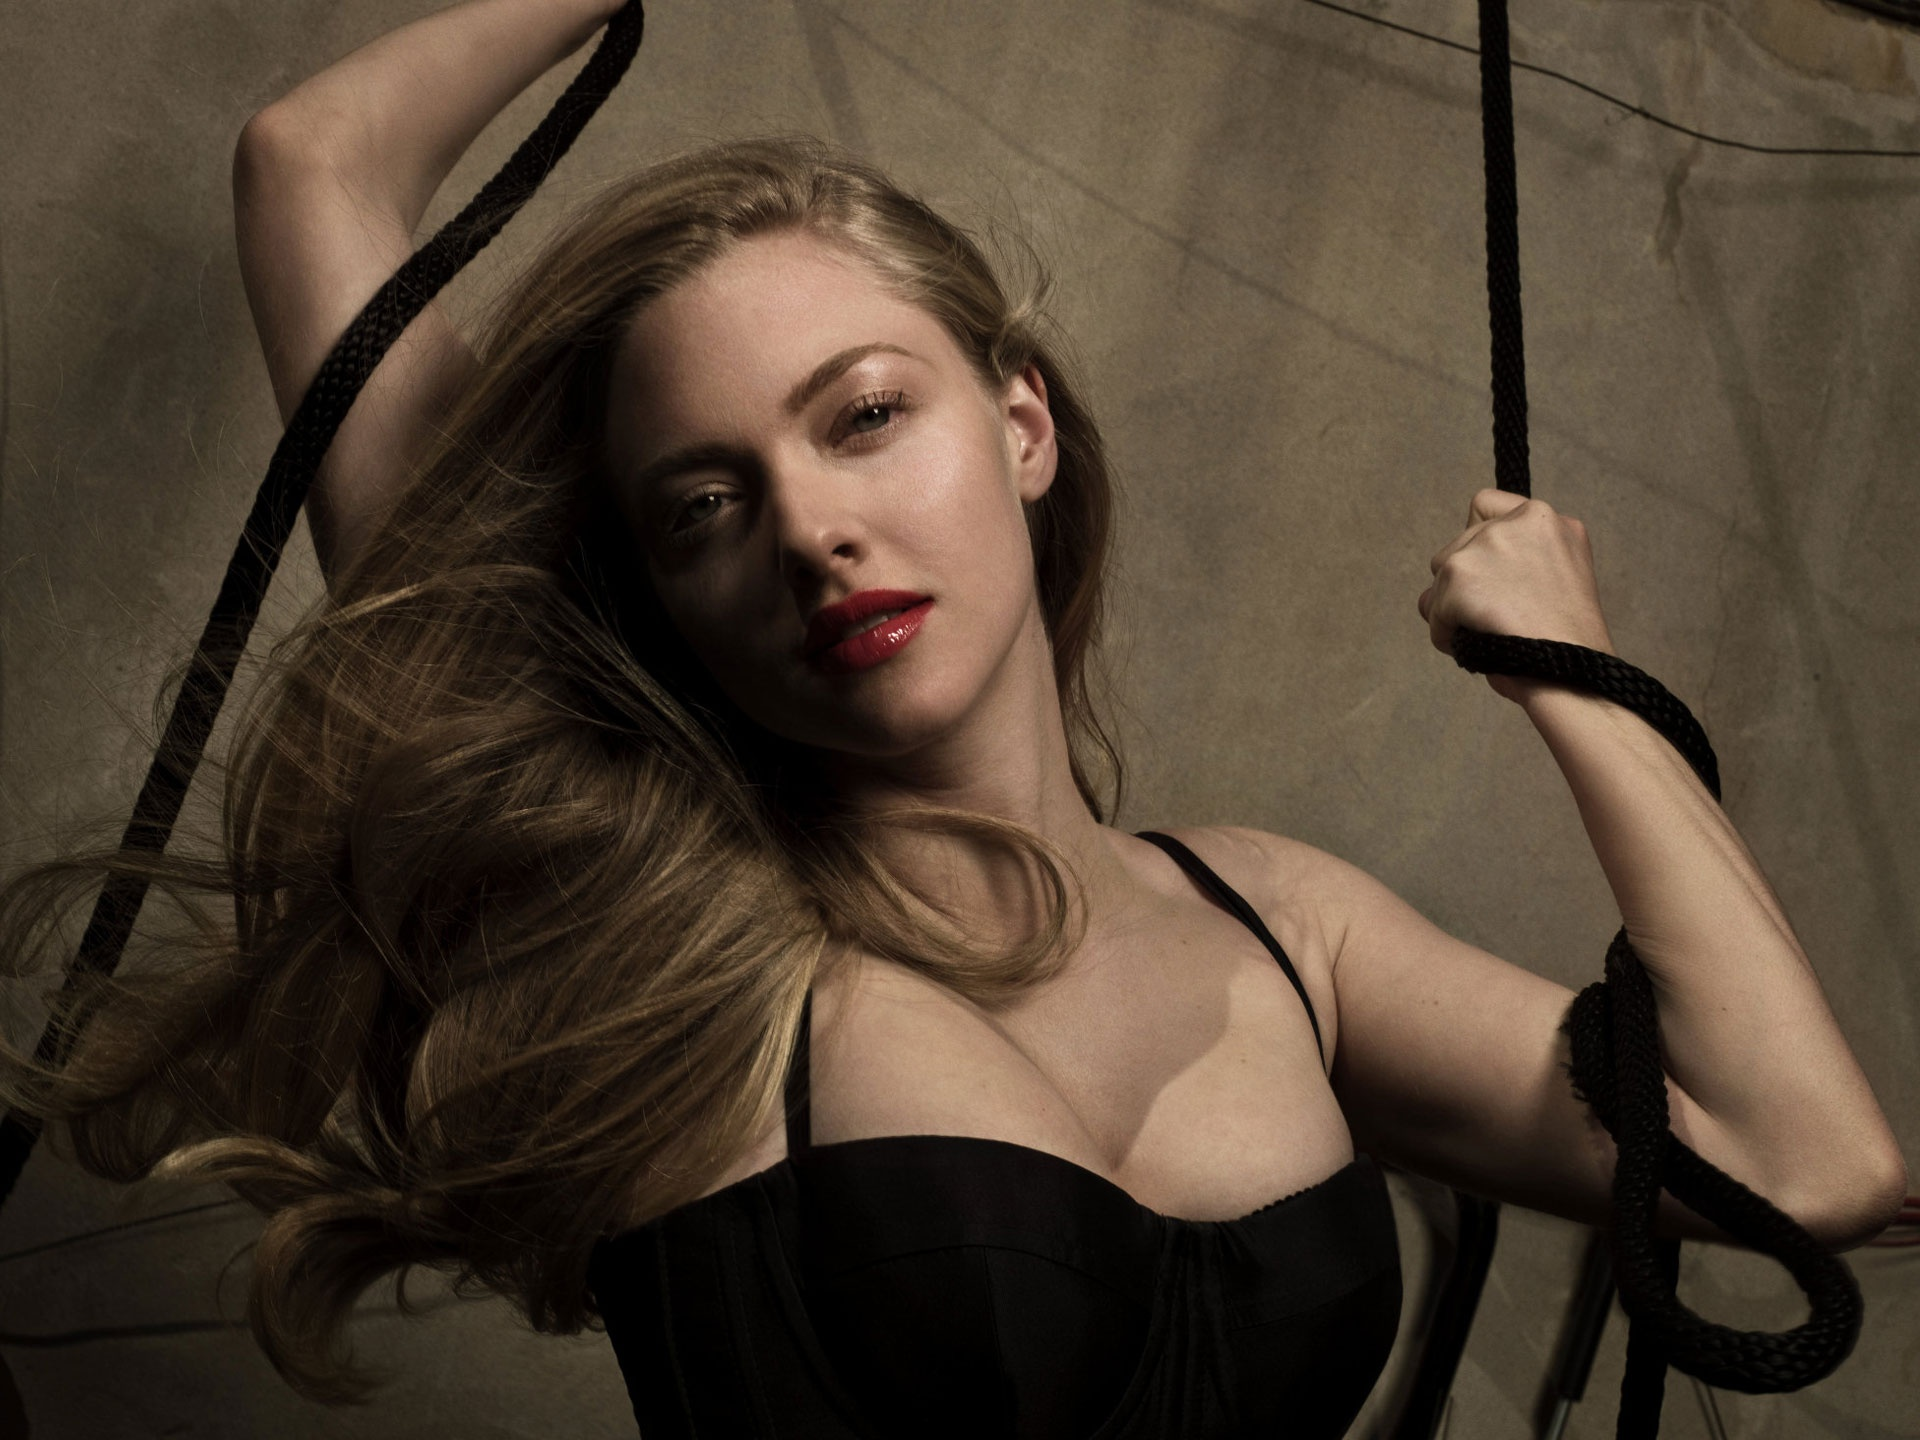 amanda seyfried PICTURES hd A12